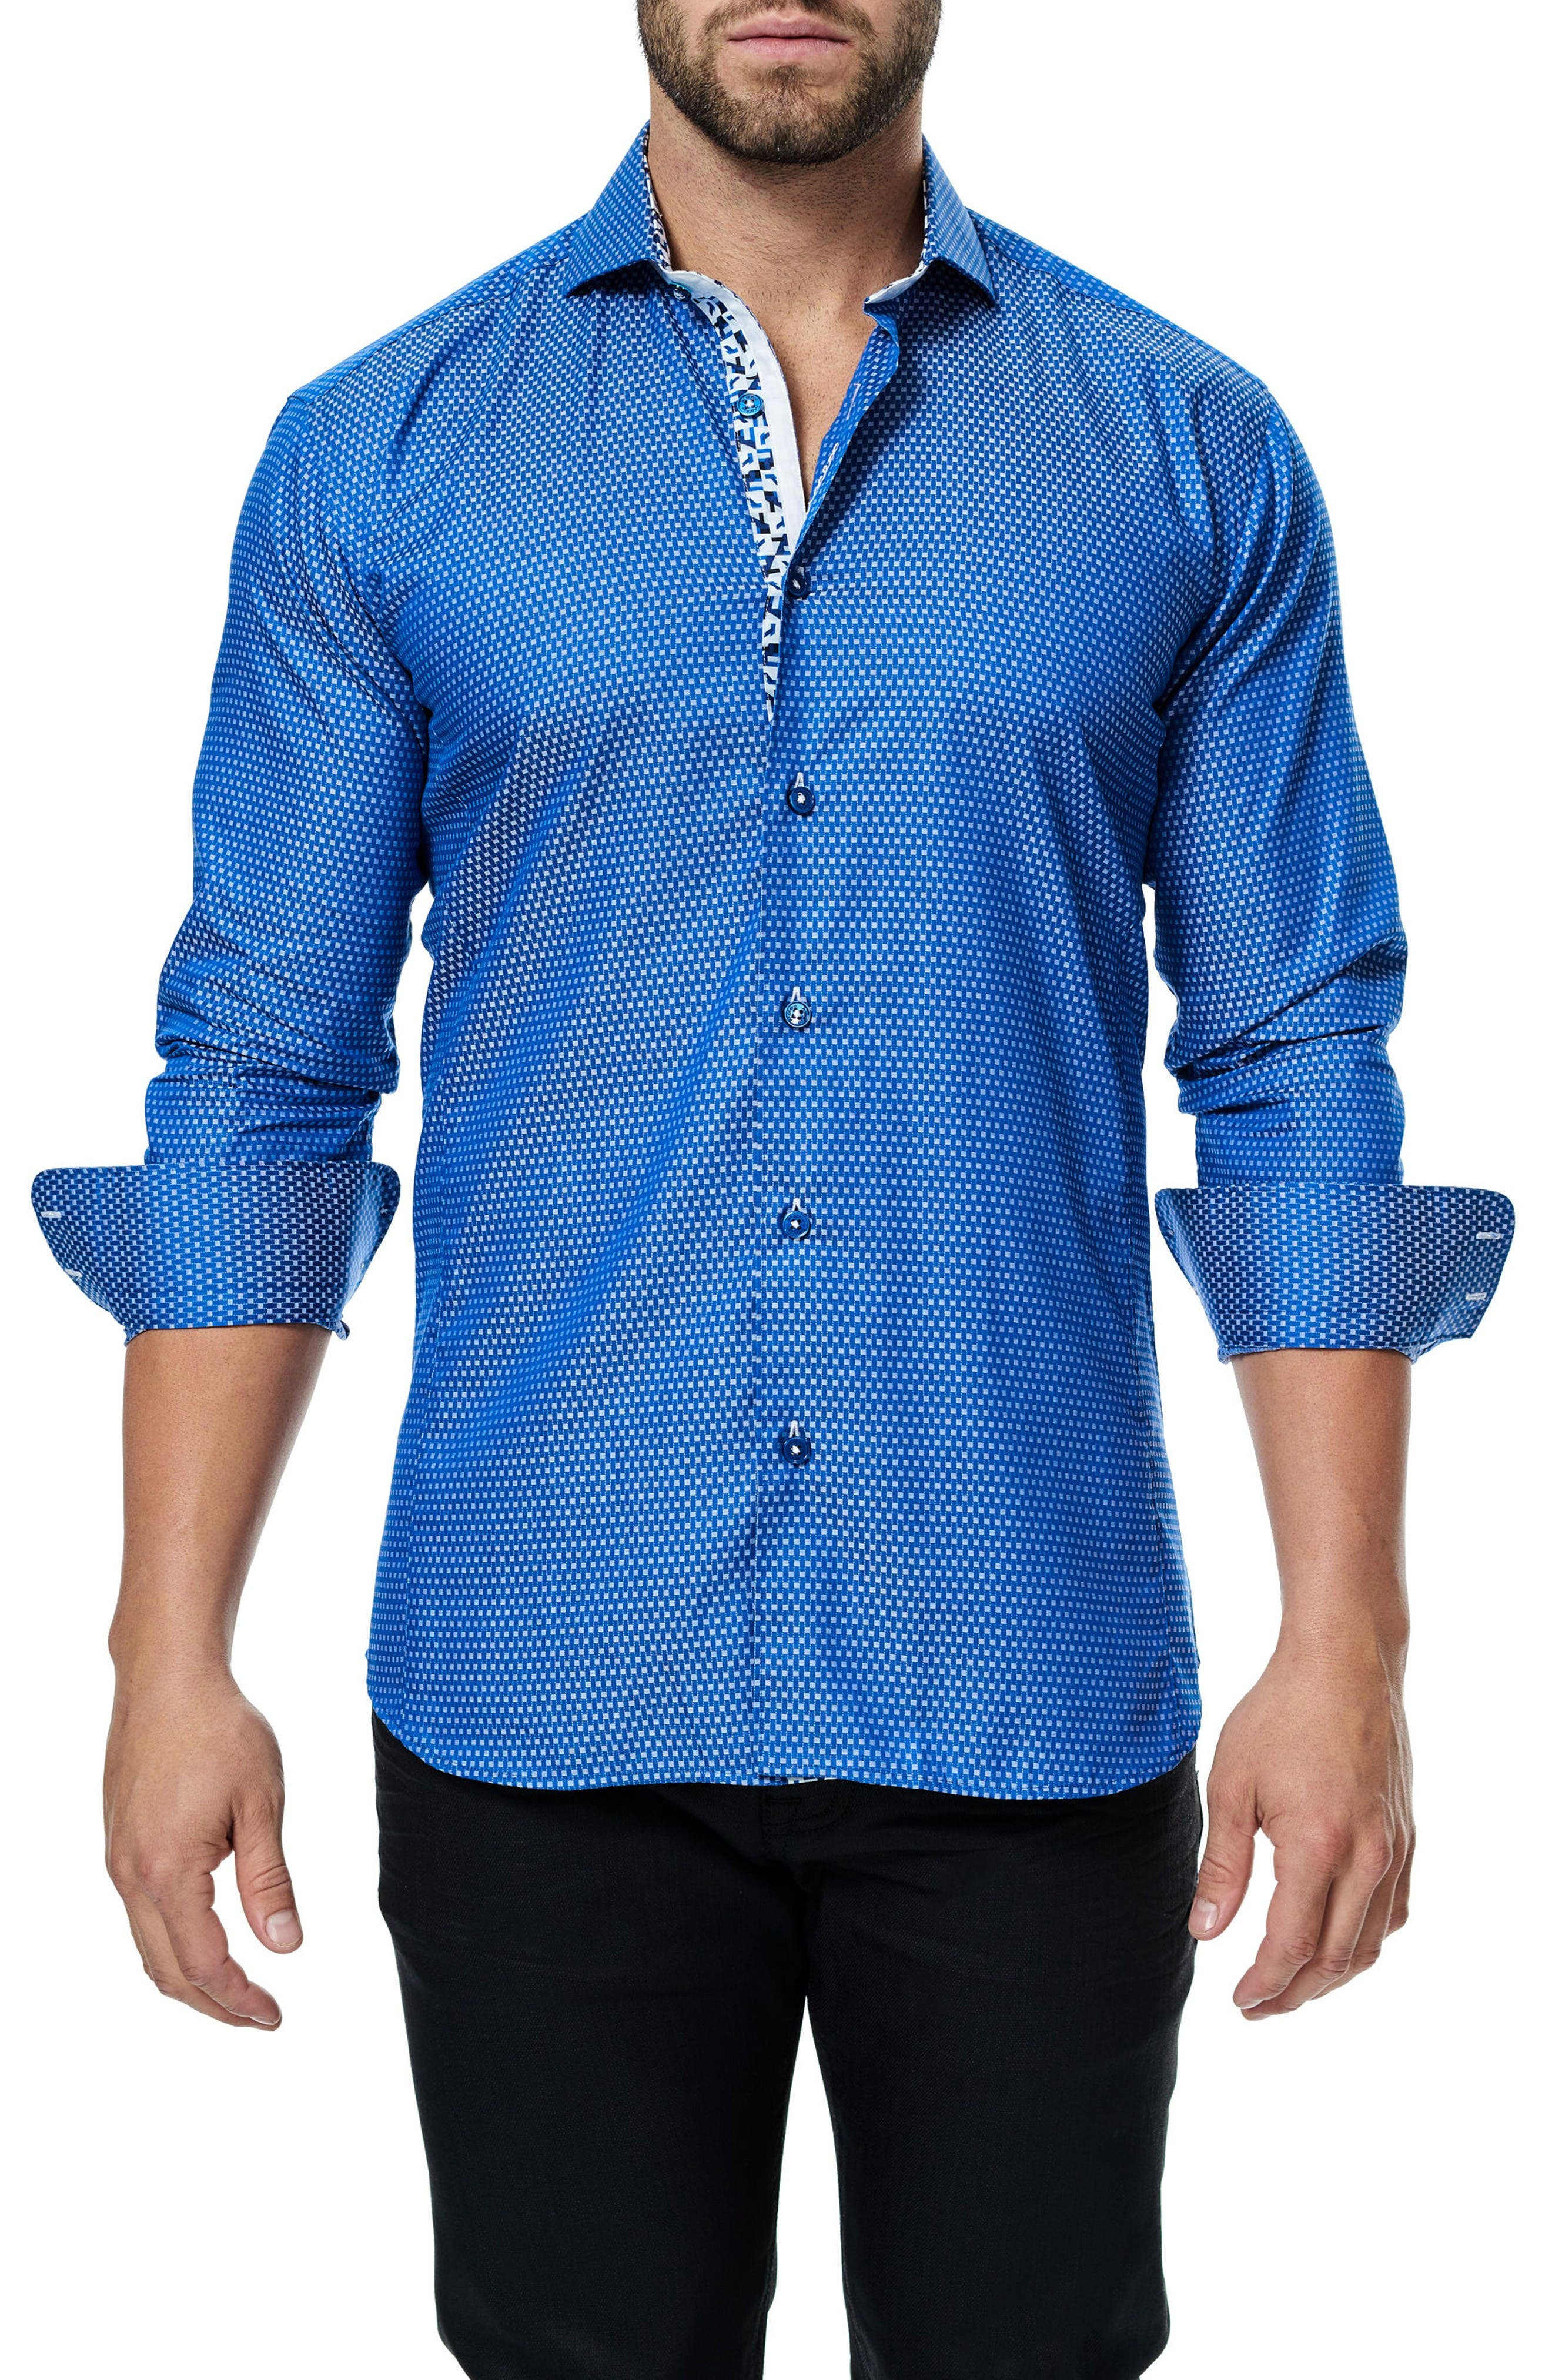 Wall Street Jacquard Sport Shirt,                             Main thumbnail 1, color,                             Medium Blue